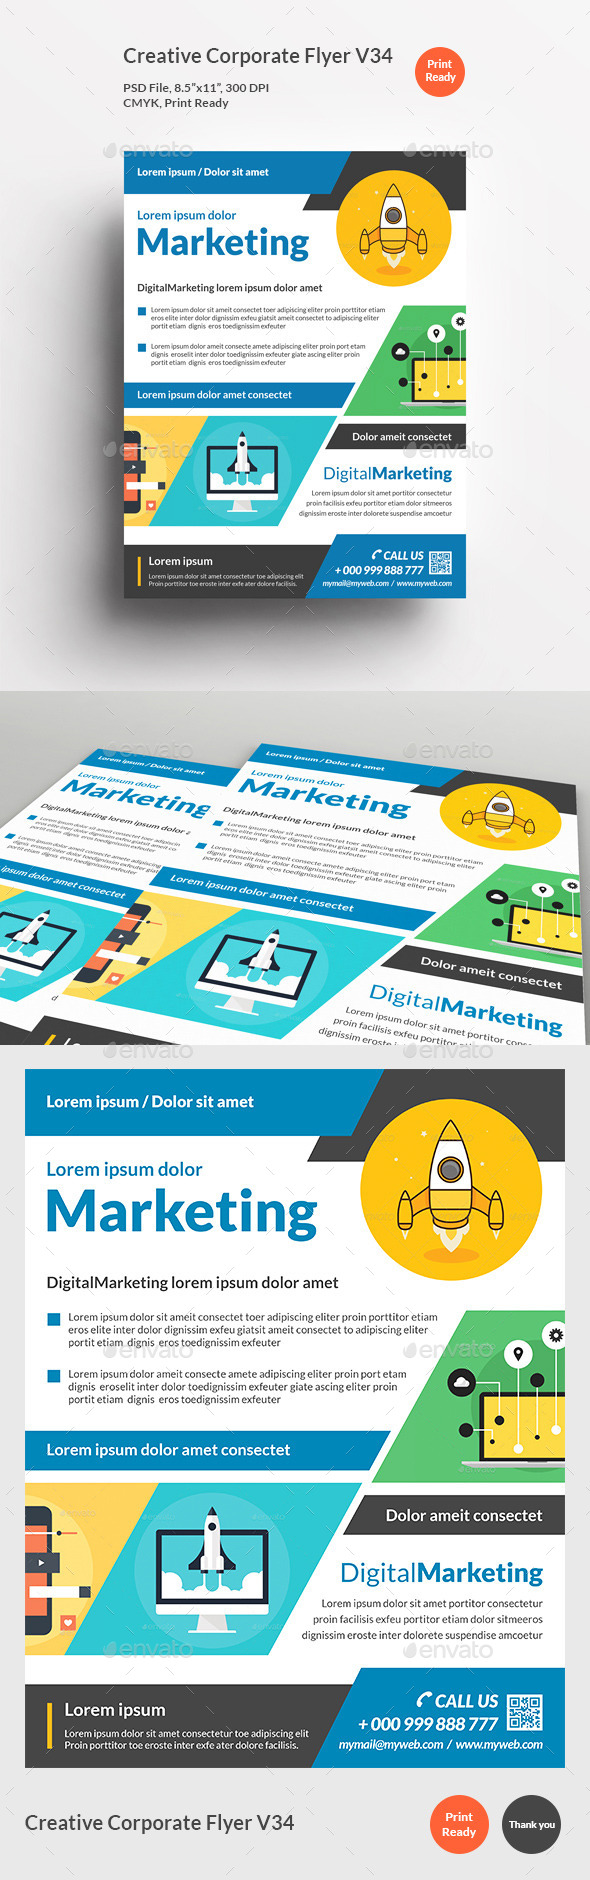 Creative Corporate Flyer V34 - Corporate Flyers